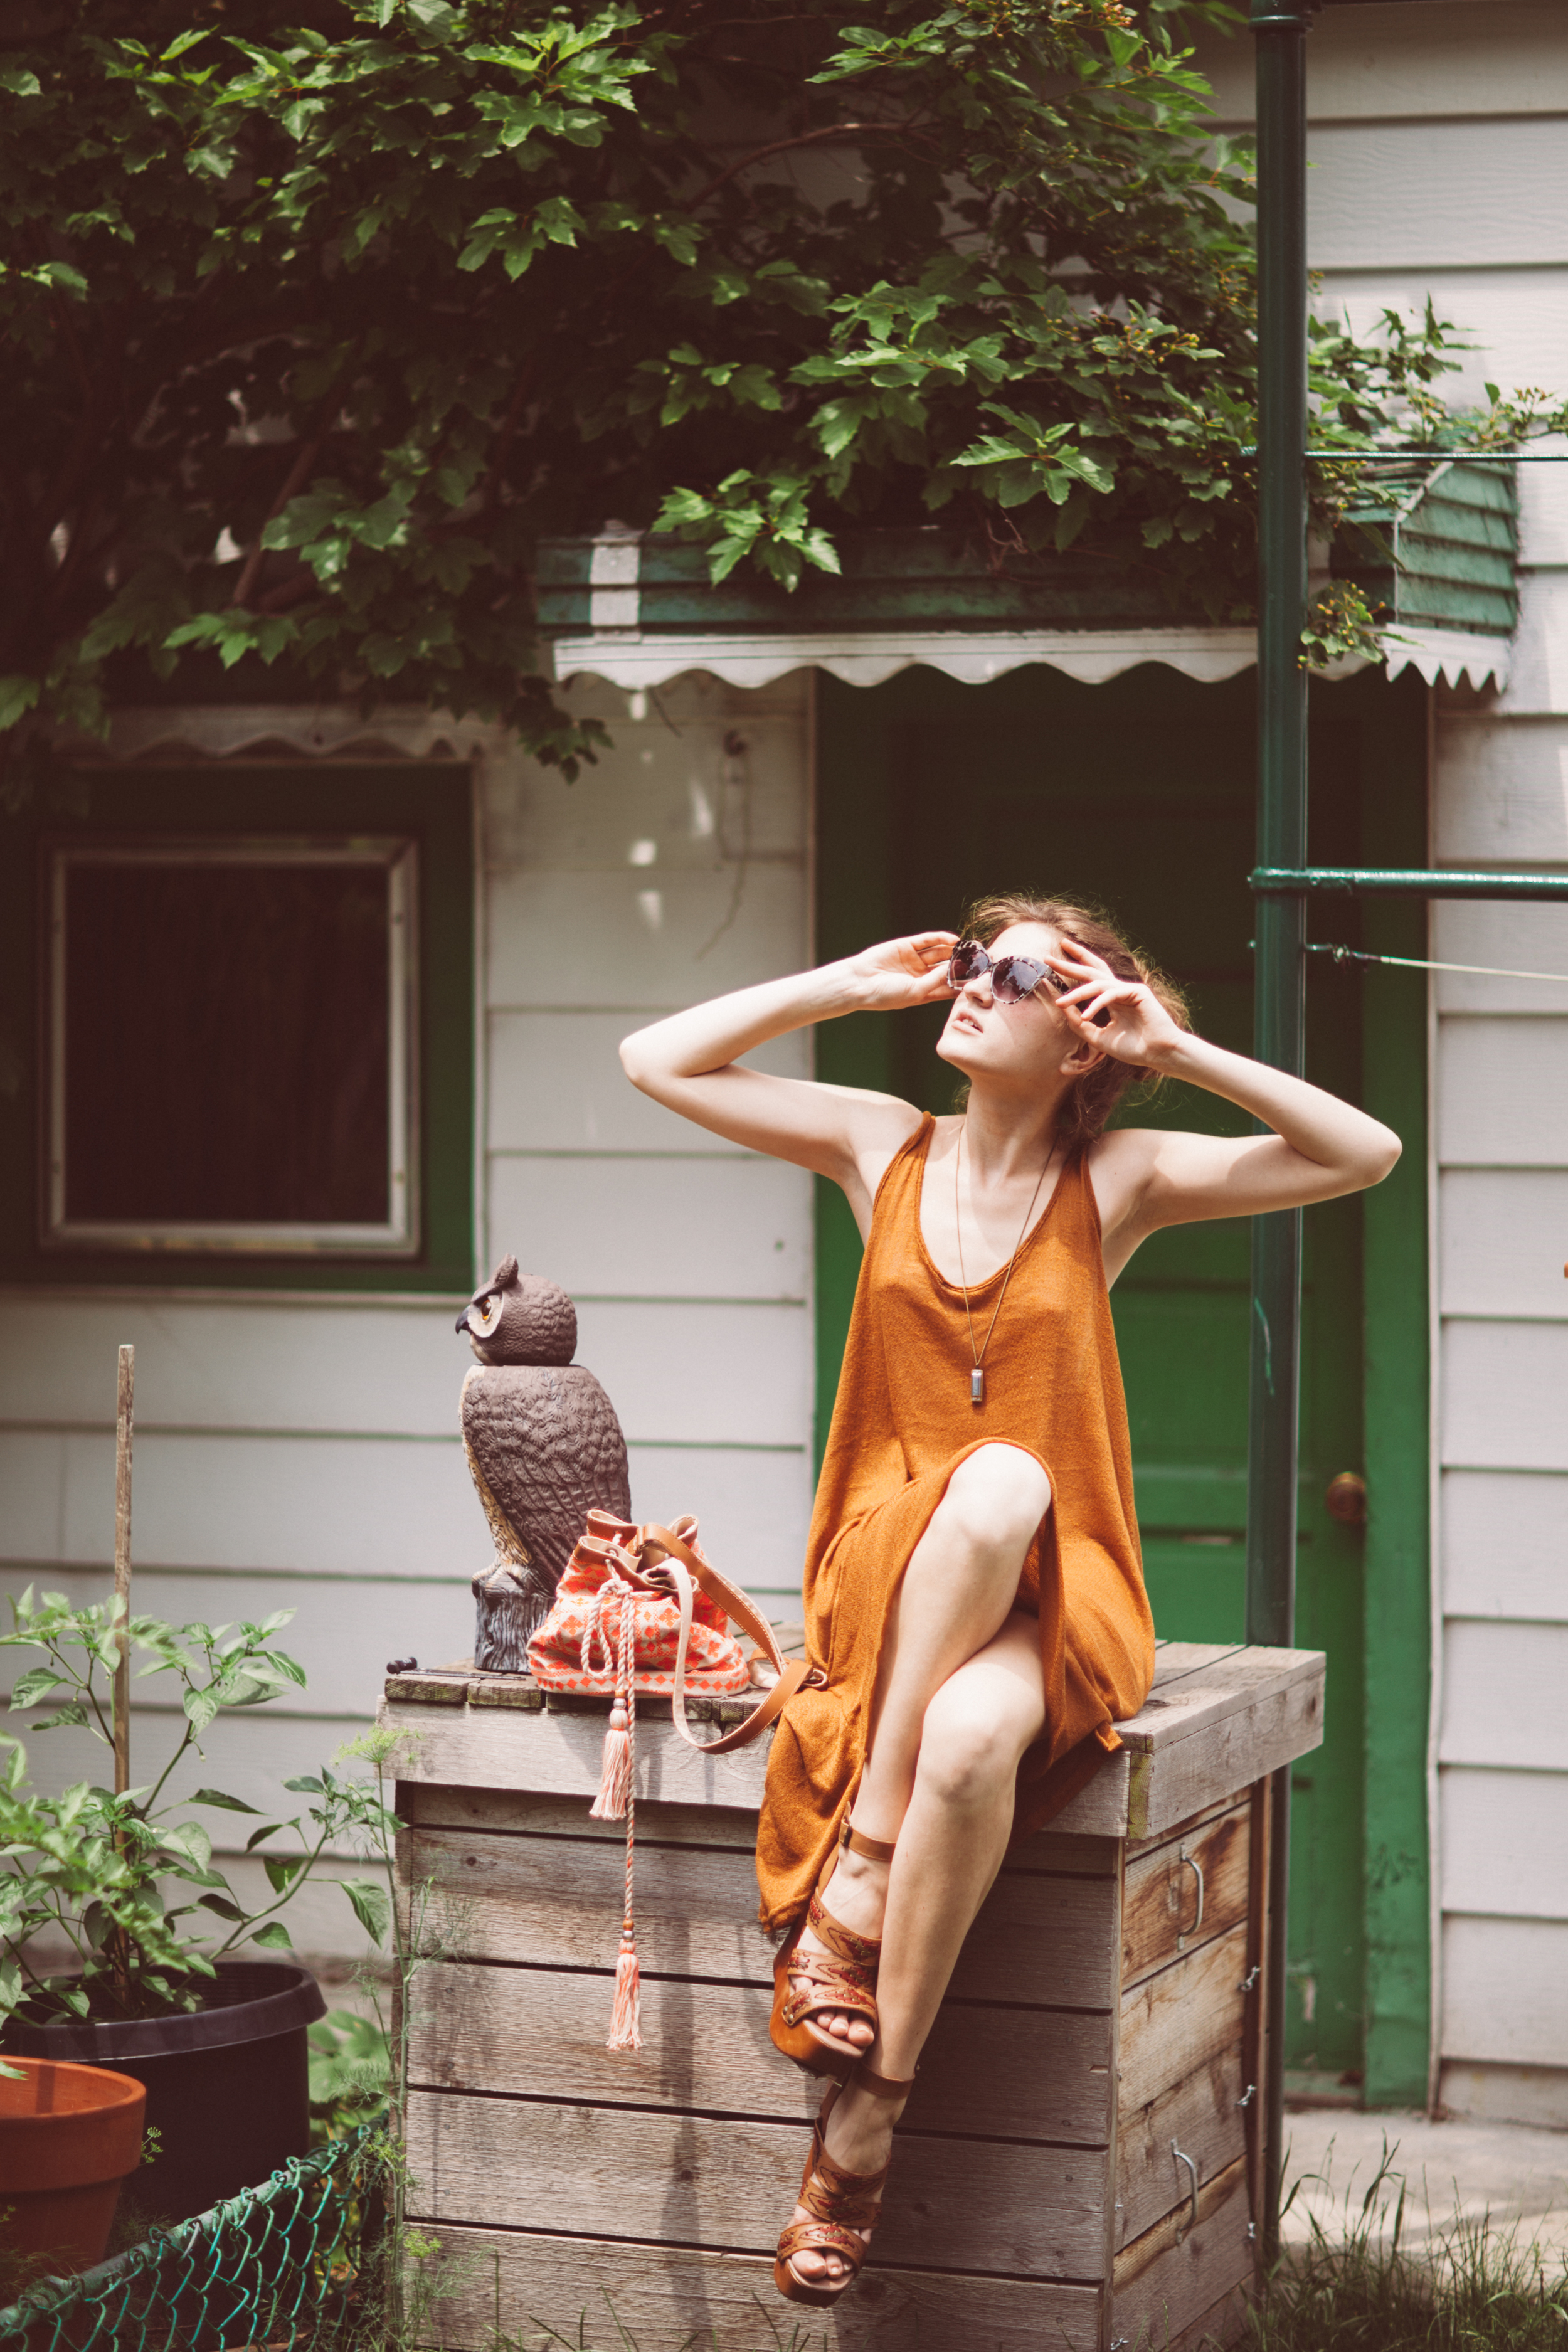 Backyard lifestyle photography Chicago by The Finches